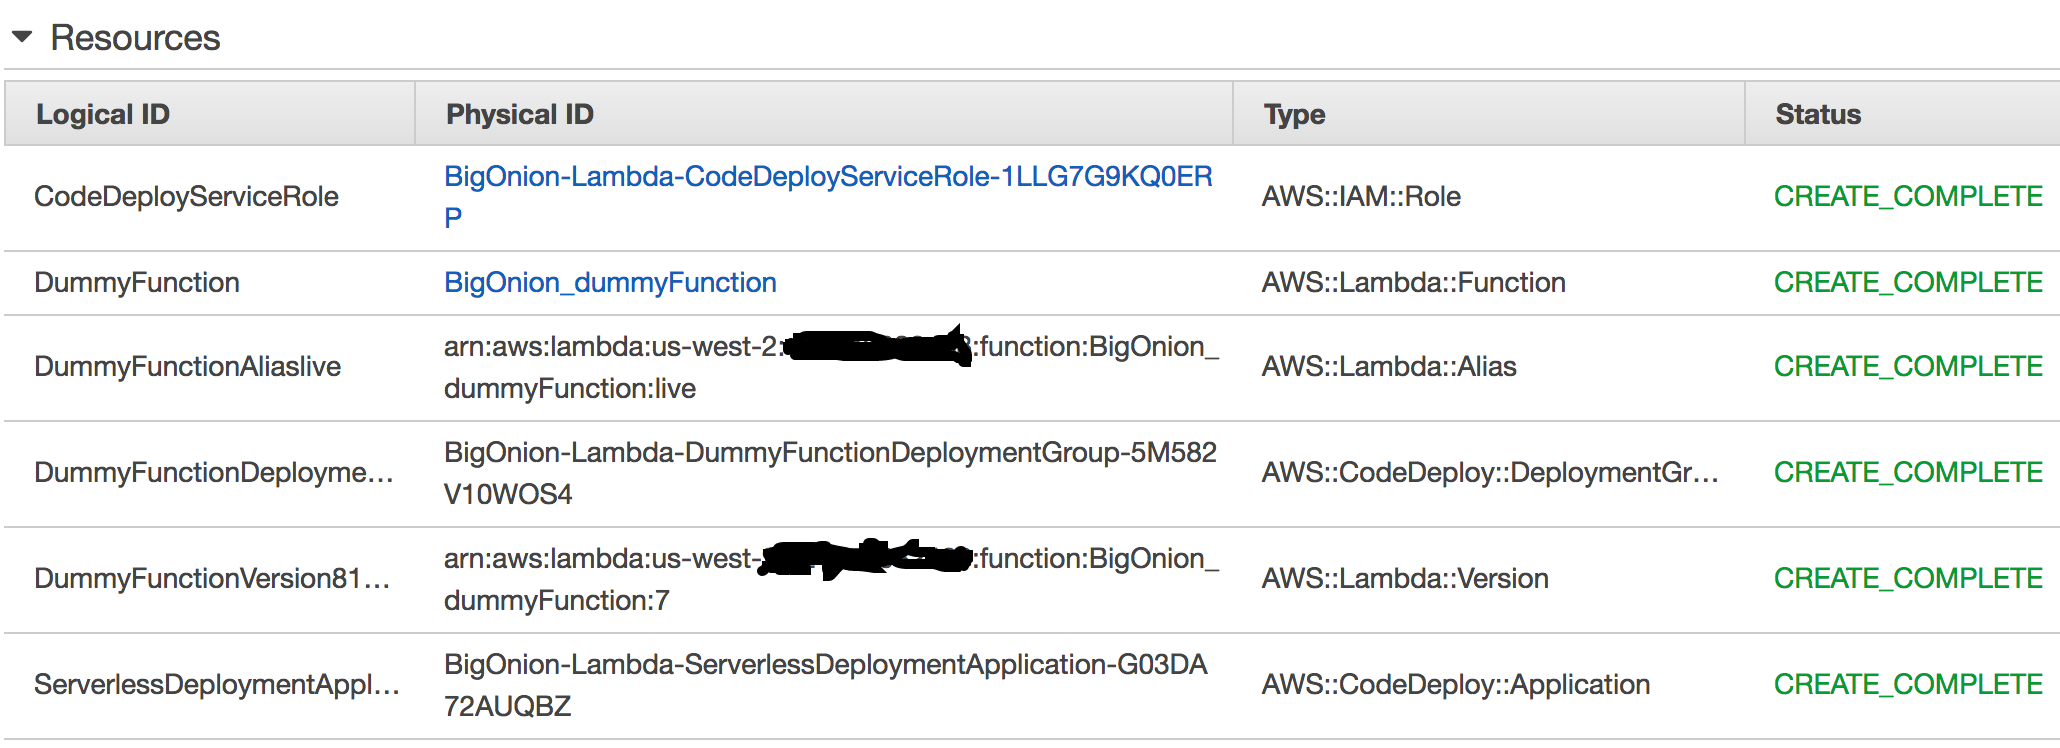 SAM with DeploymentPreference configuration does not create